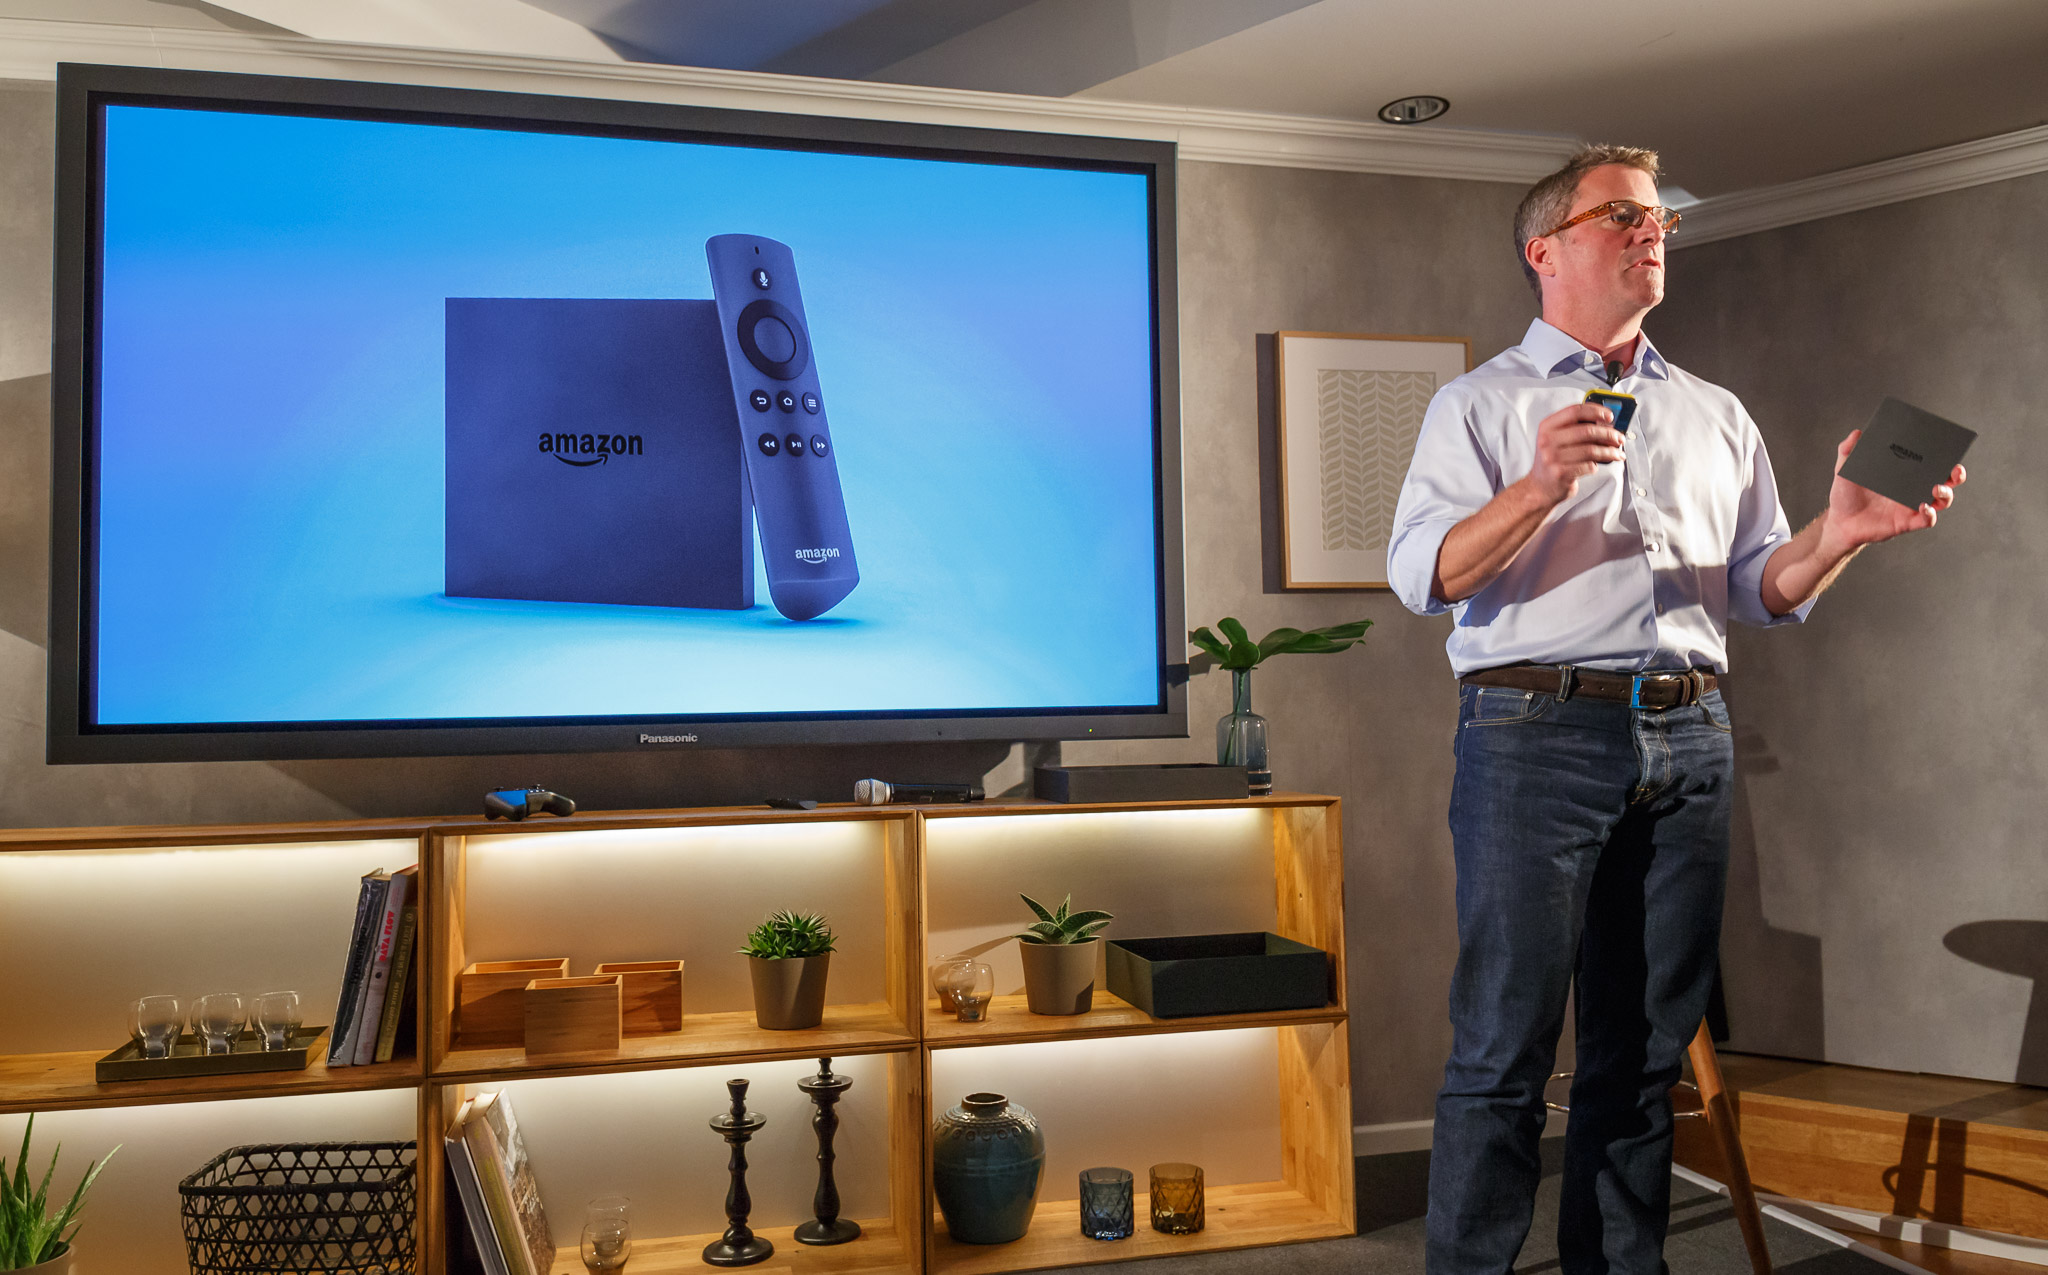 Amazon's Vice President Peter Larsen announces that the Fire TV streaming-media device is on sale in Germany and the UK.